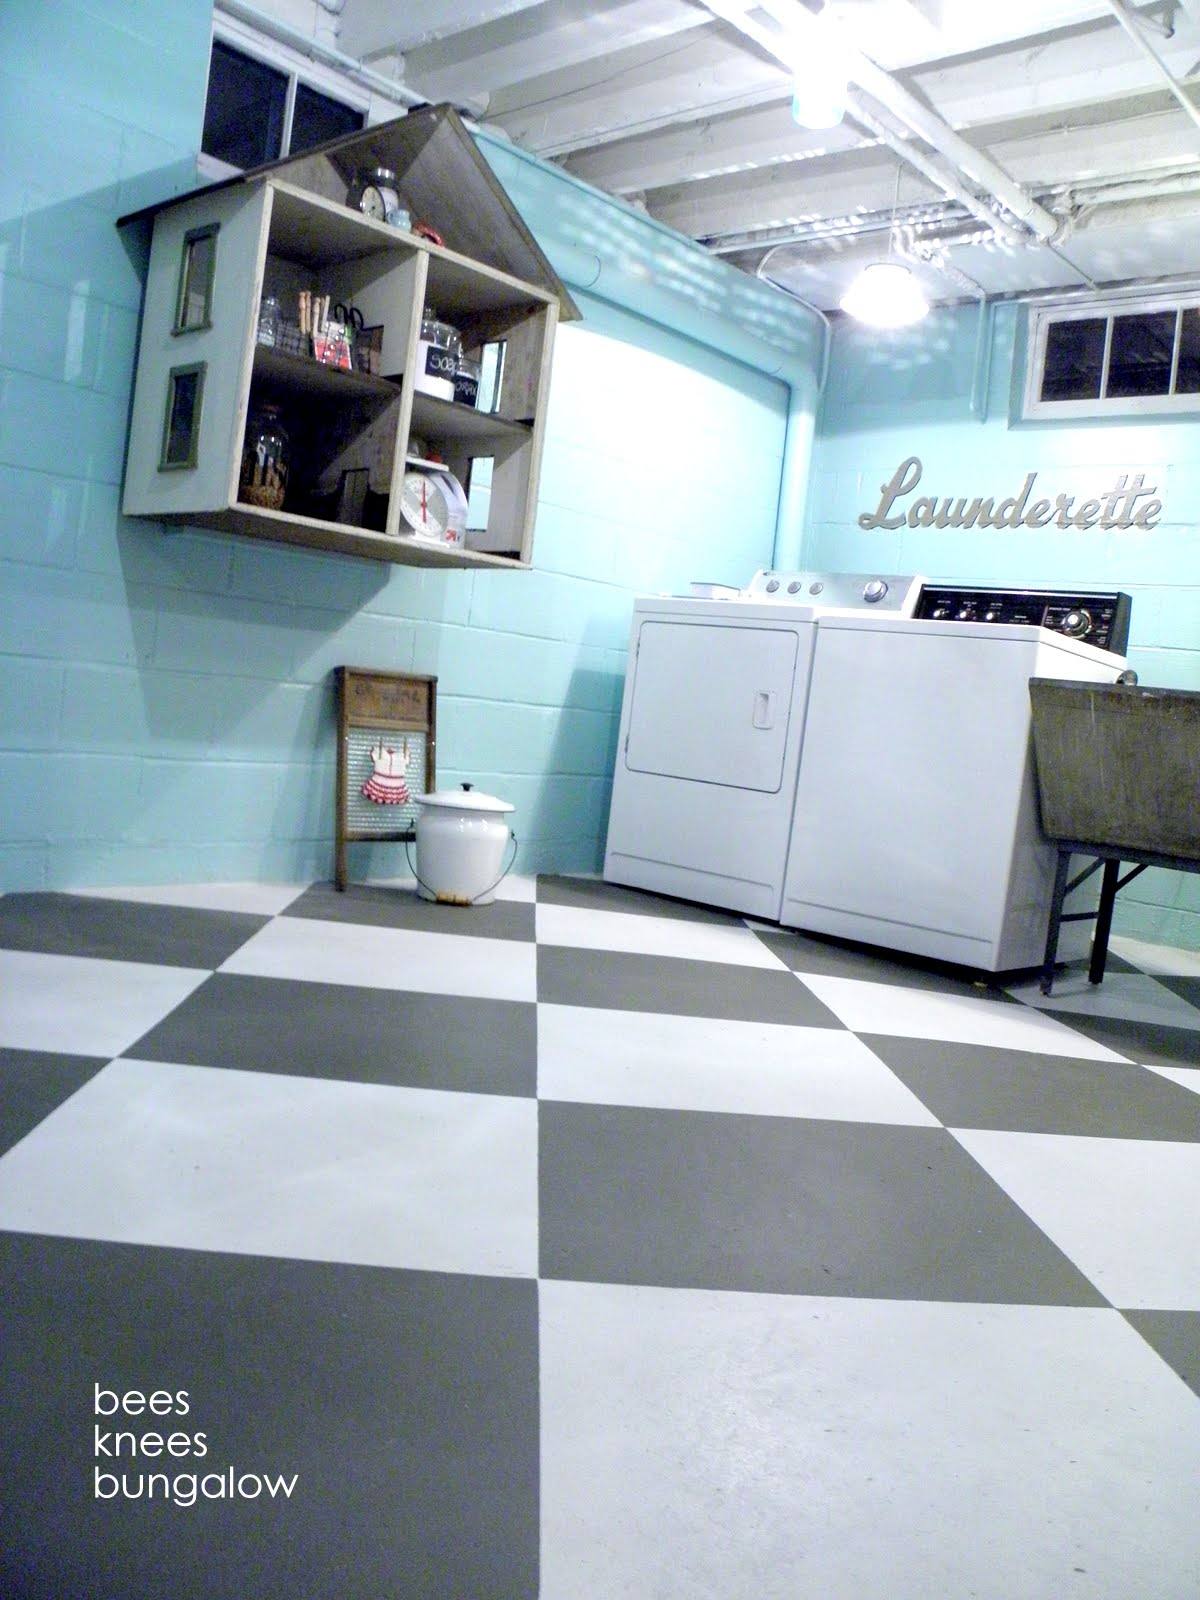 Paint Your Space & Unfinished Basement Laundry Room Ideas August 2018 - Toolversed